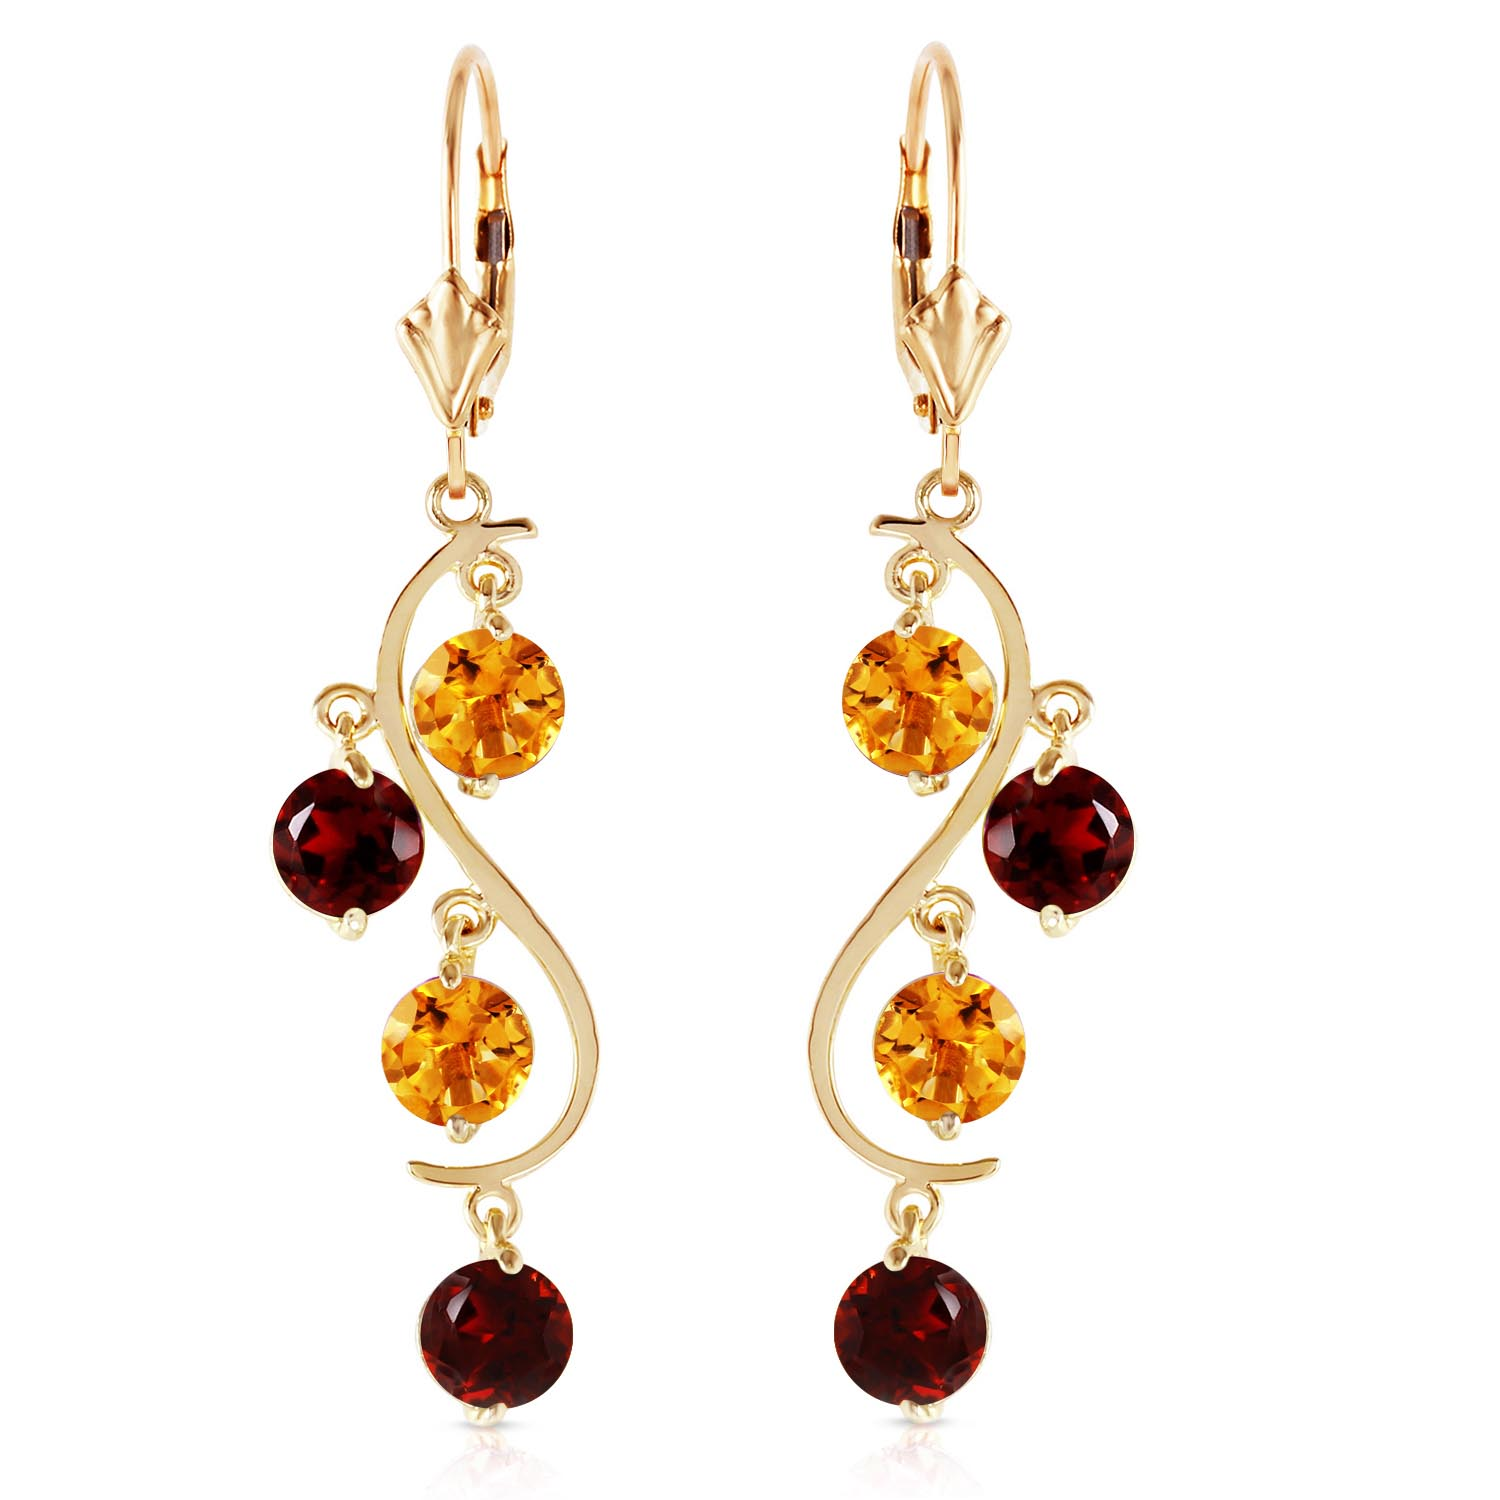 Citrine and Garnet Dream Catcher Drop Earrings 4.6ctw in 9ct Gold